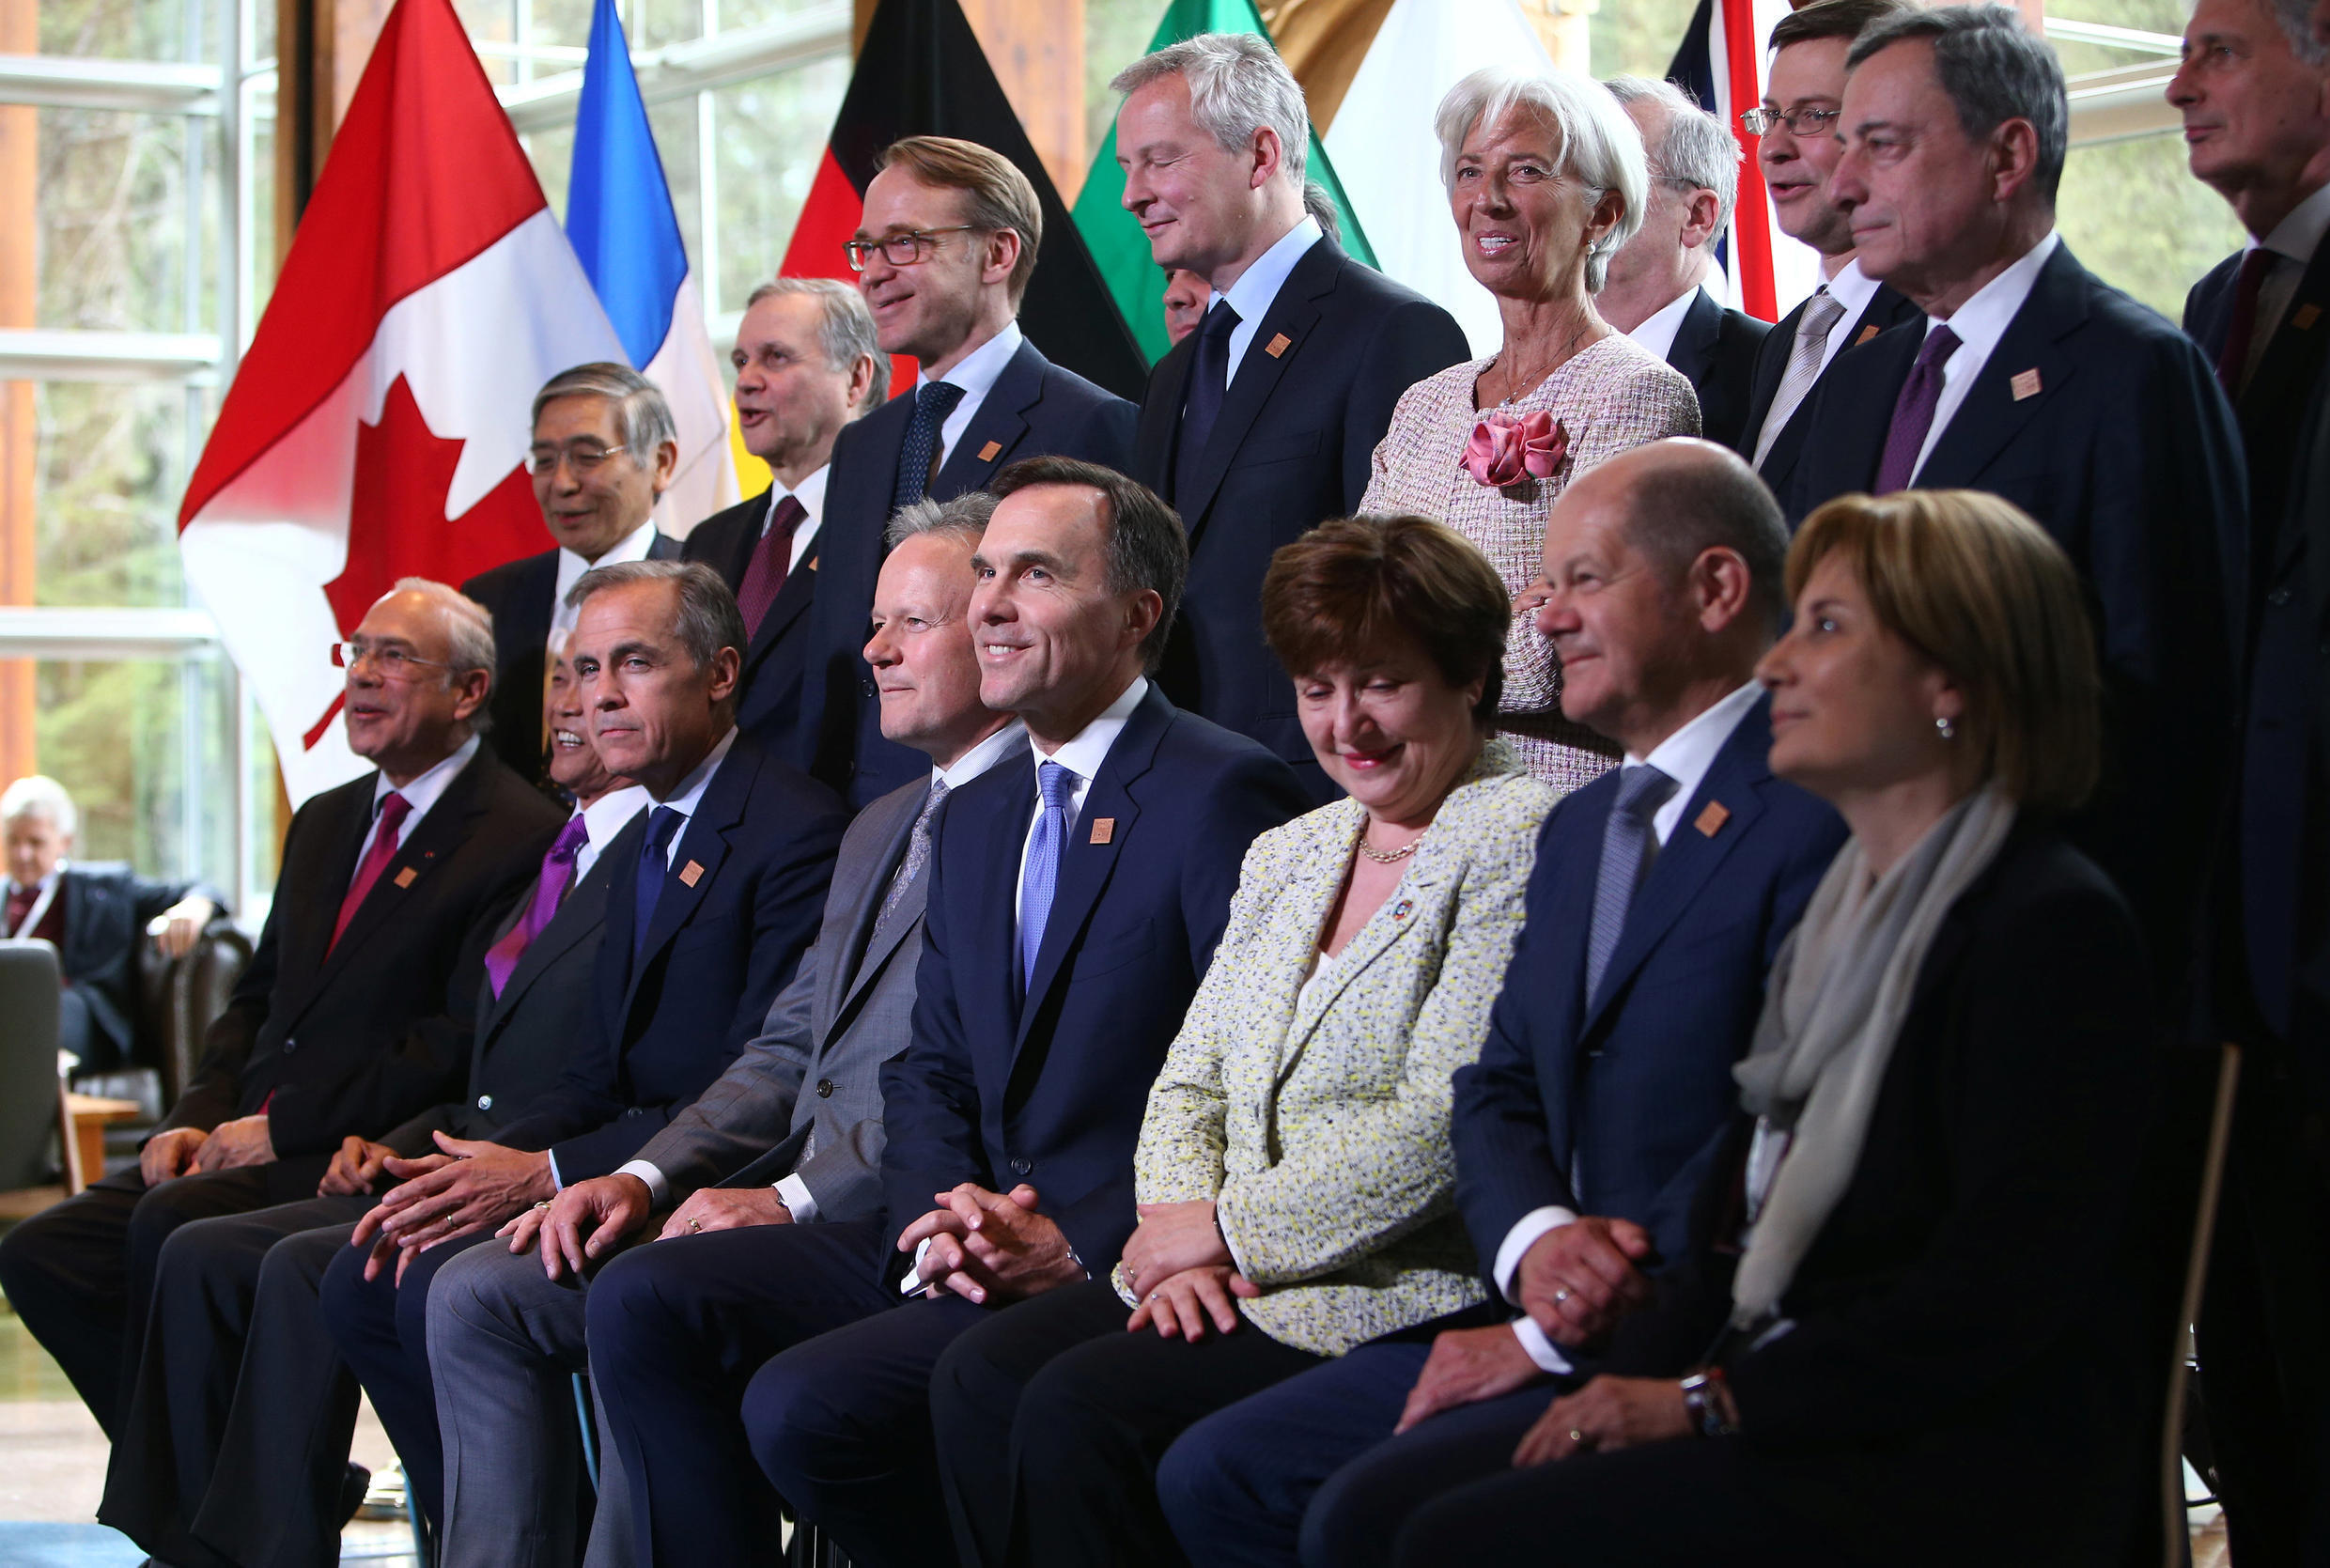 The G7 finance ministers at the summit in Whistler, British Columbia, Canada